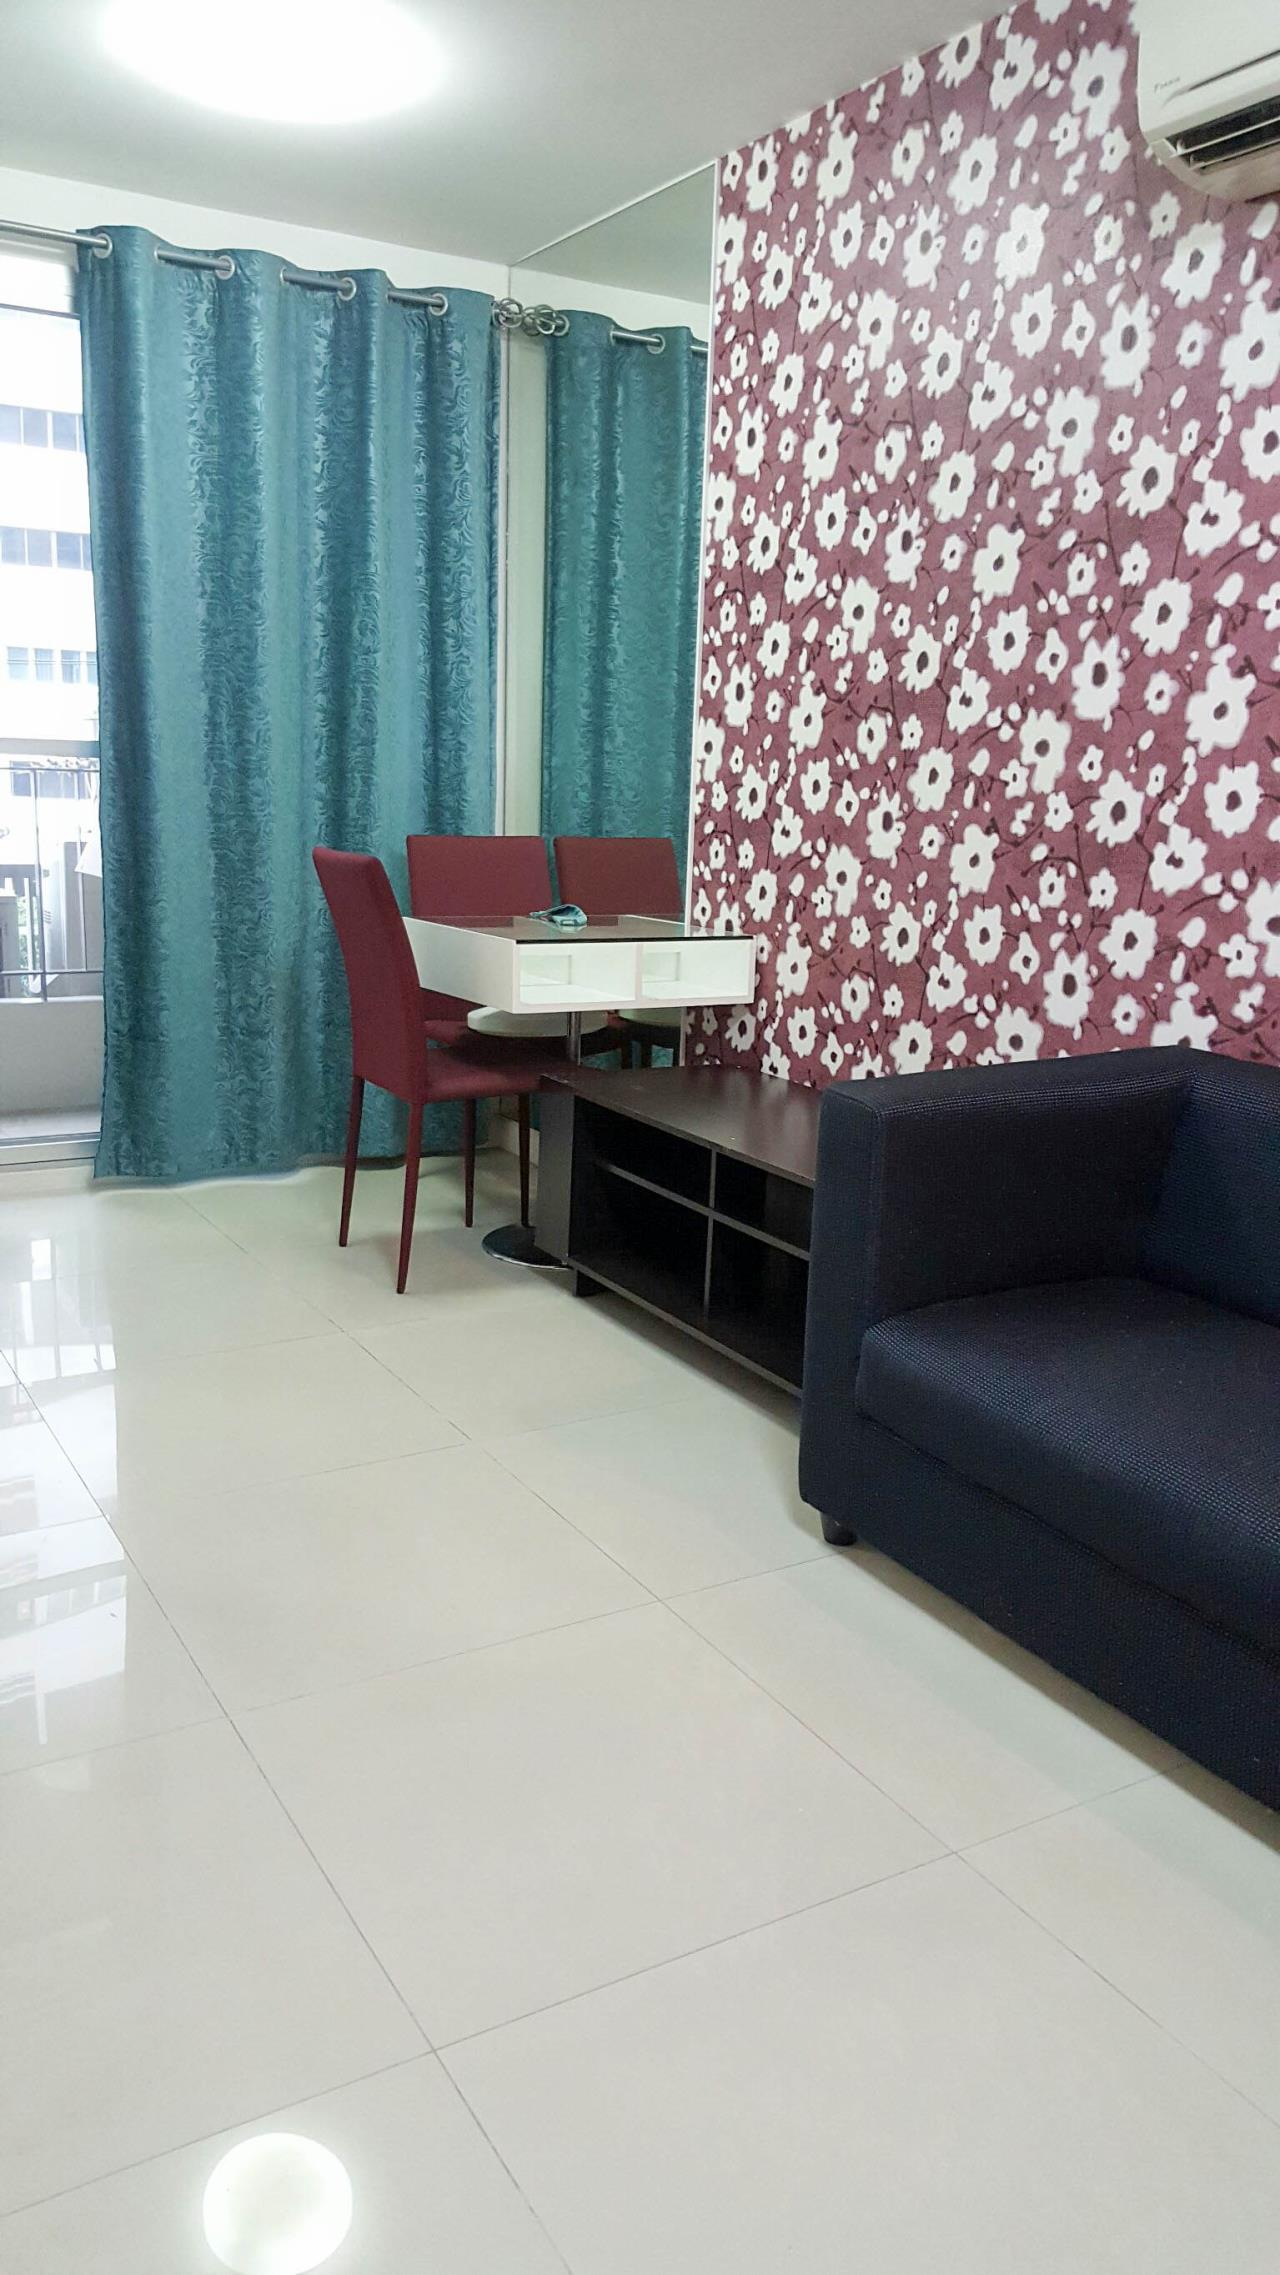 RE/MAX Properties Agency's 1 Bedroom 37 Sq.m for rent at Clover Thonglor 5